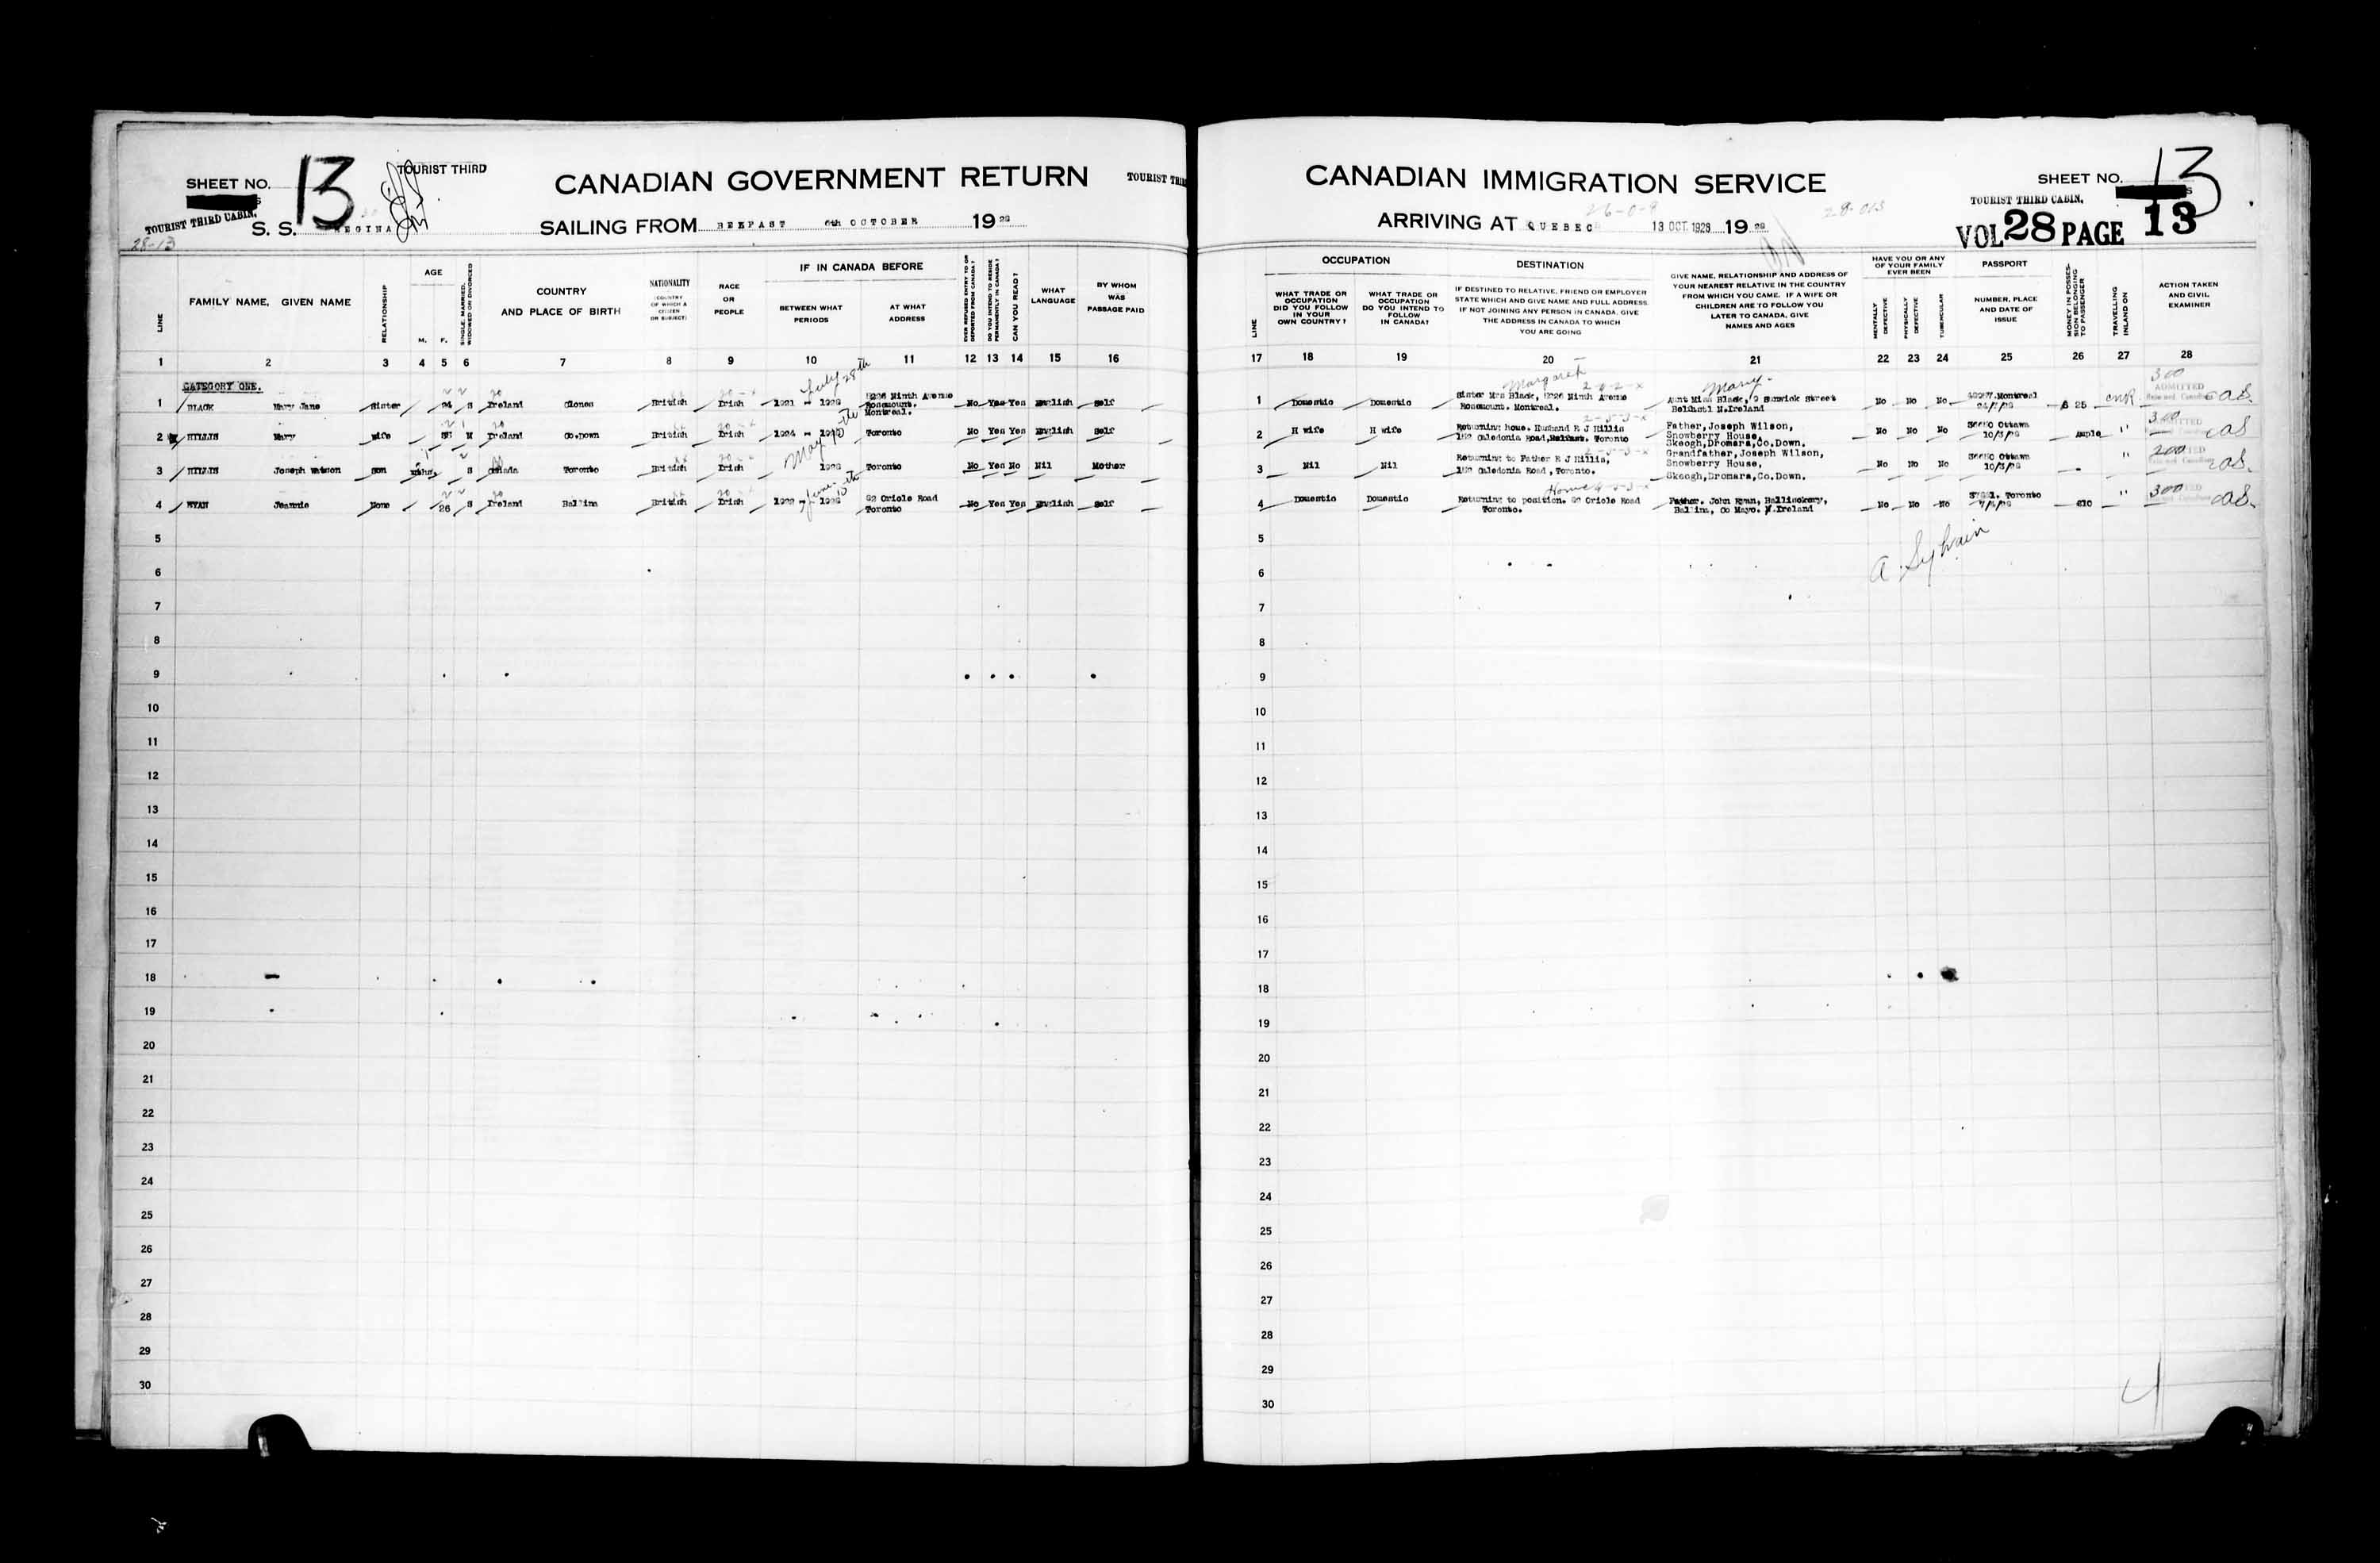 Title: Passenger Lists: Quebec City (1925-1935) - Mikan Number: 134839 - Microform: t-14750